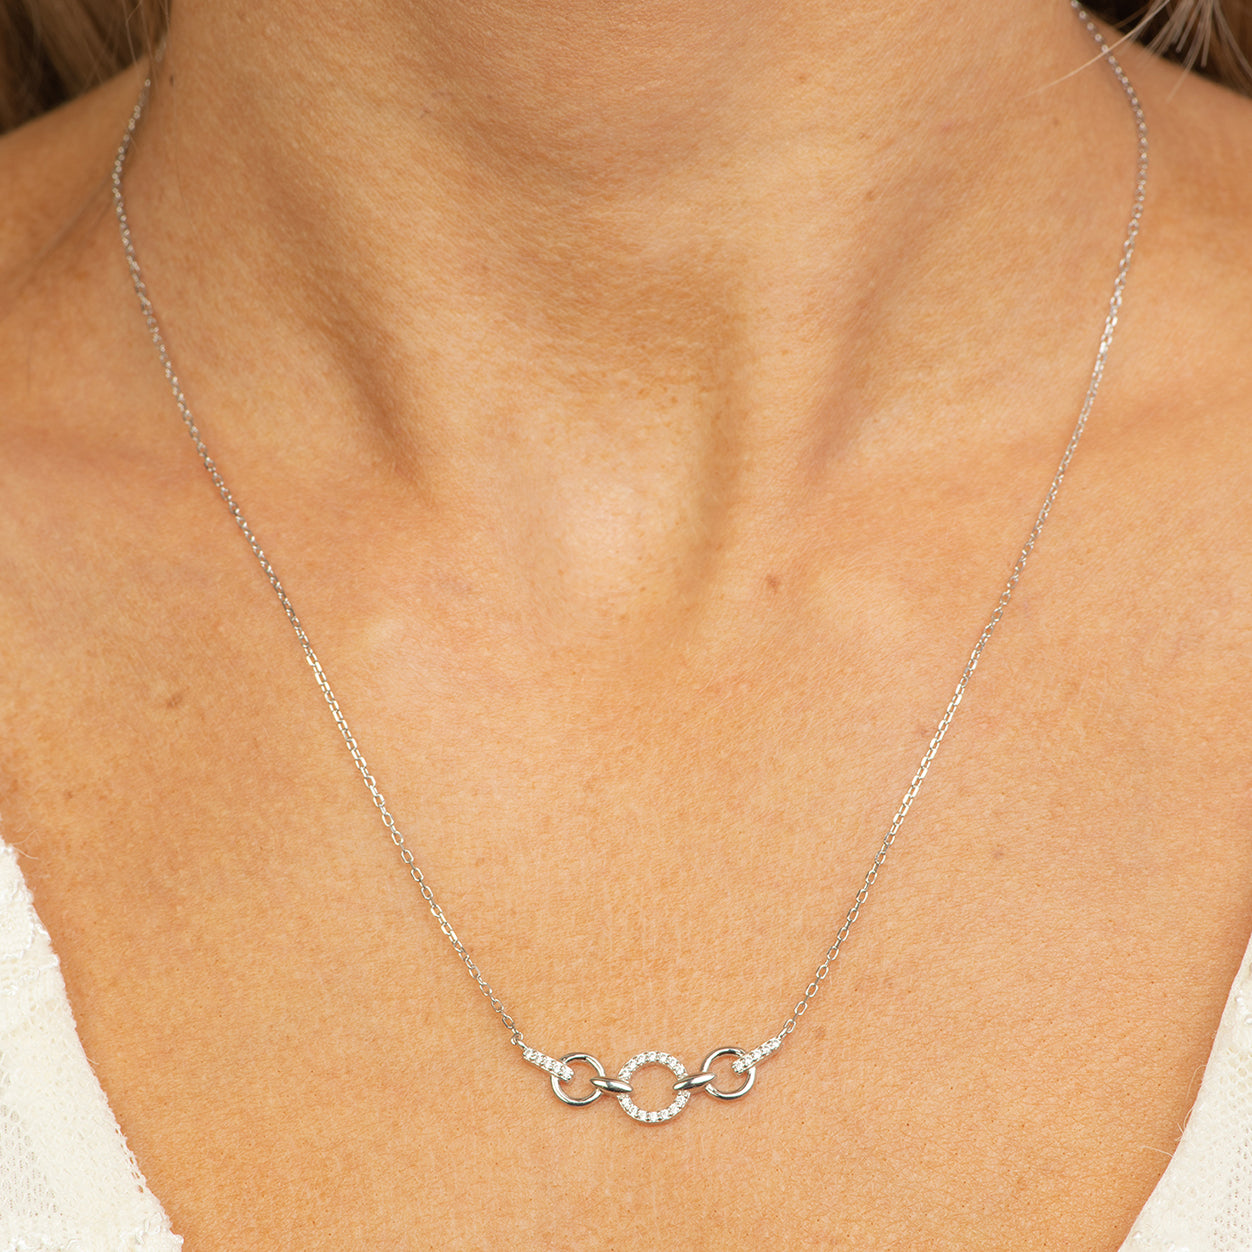 classic silver necklace.